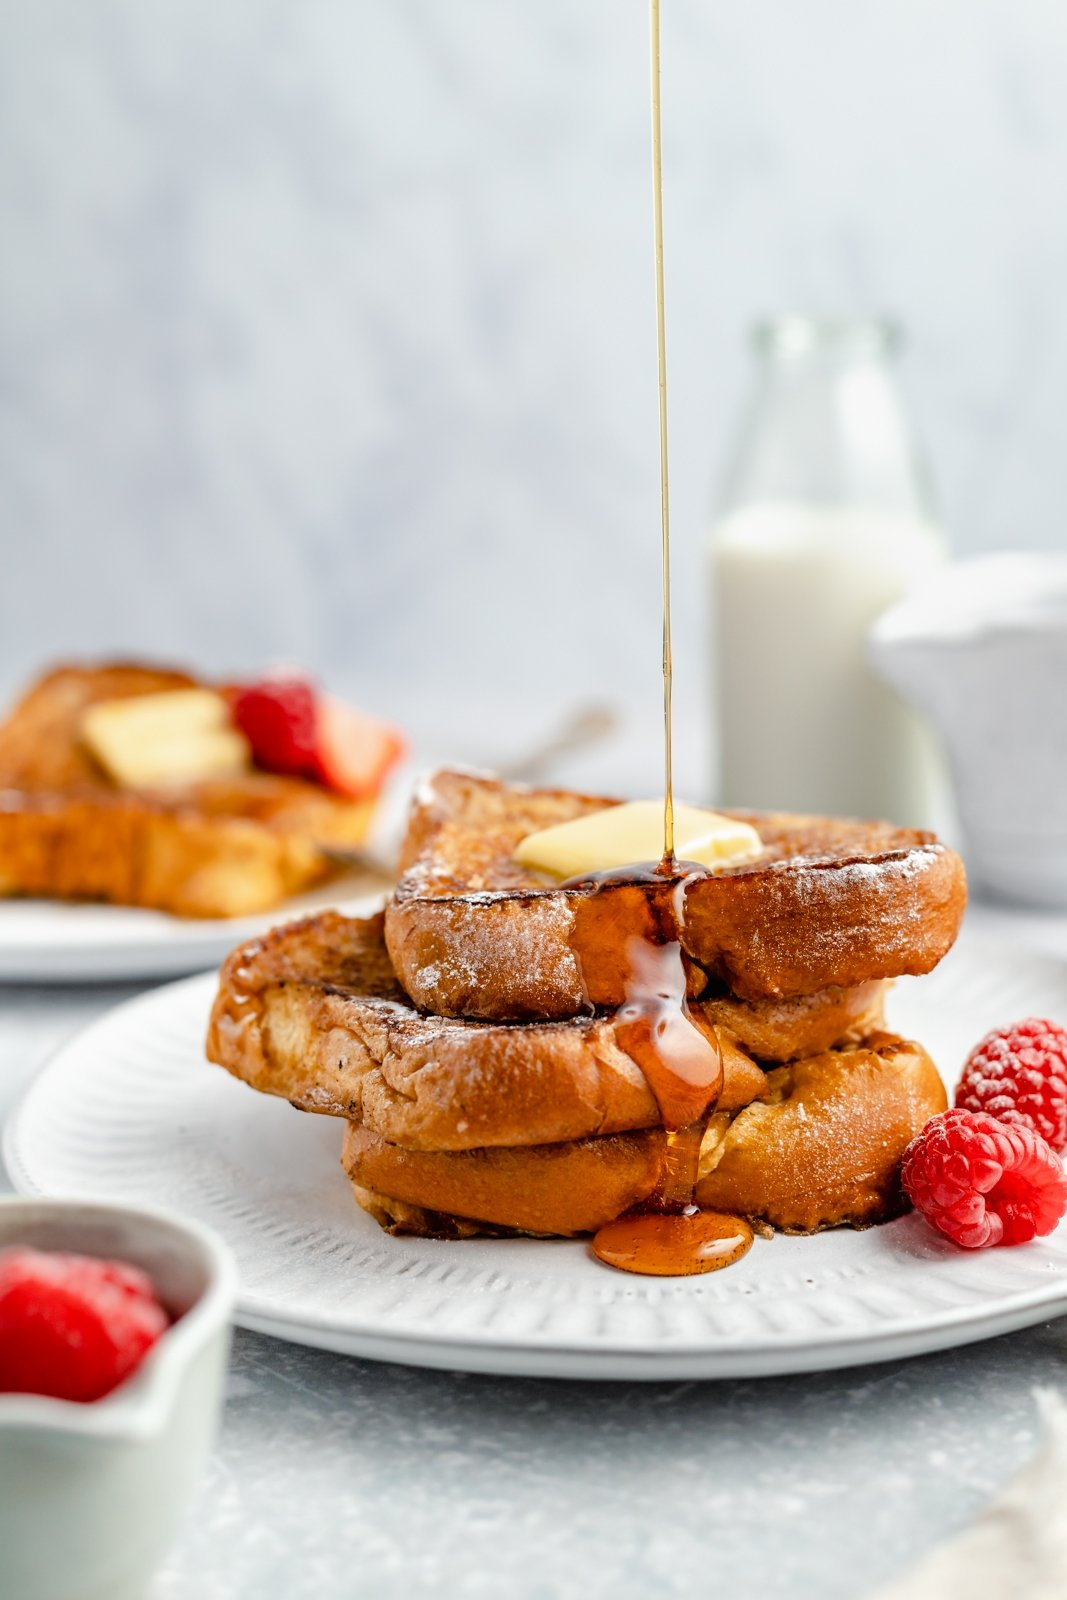 pouring syrup on a stack of dairy free french toast